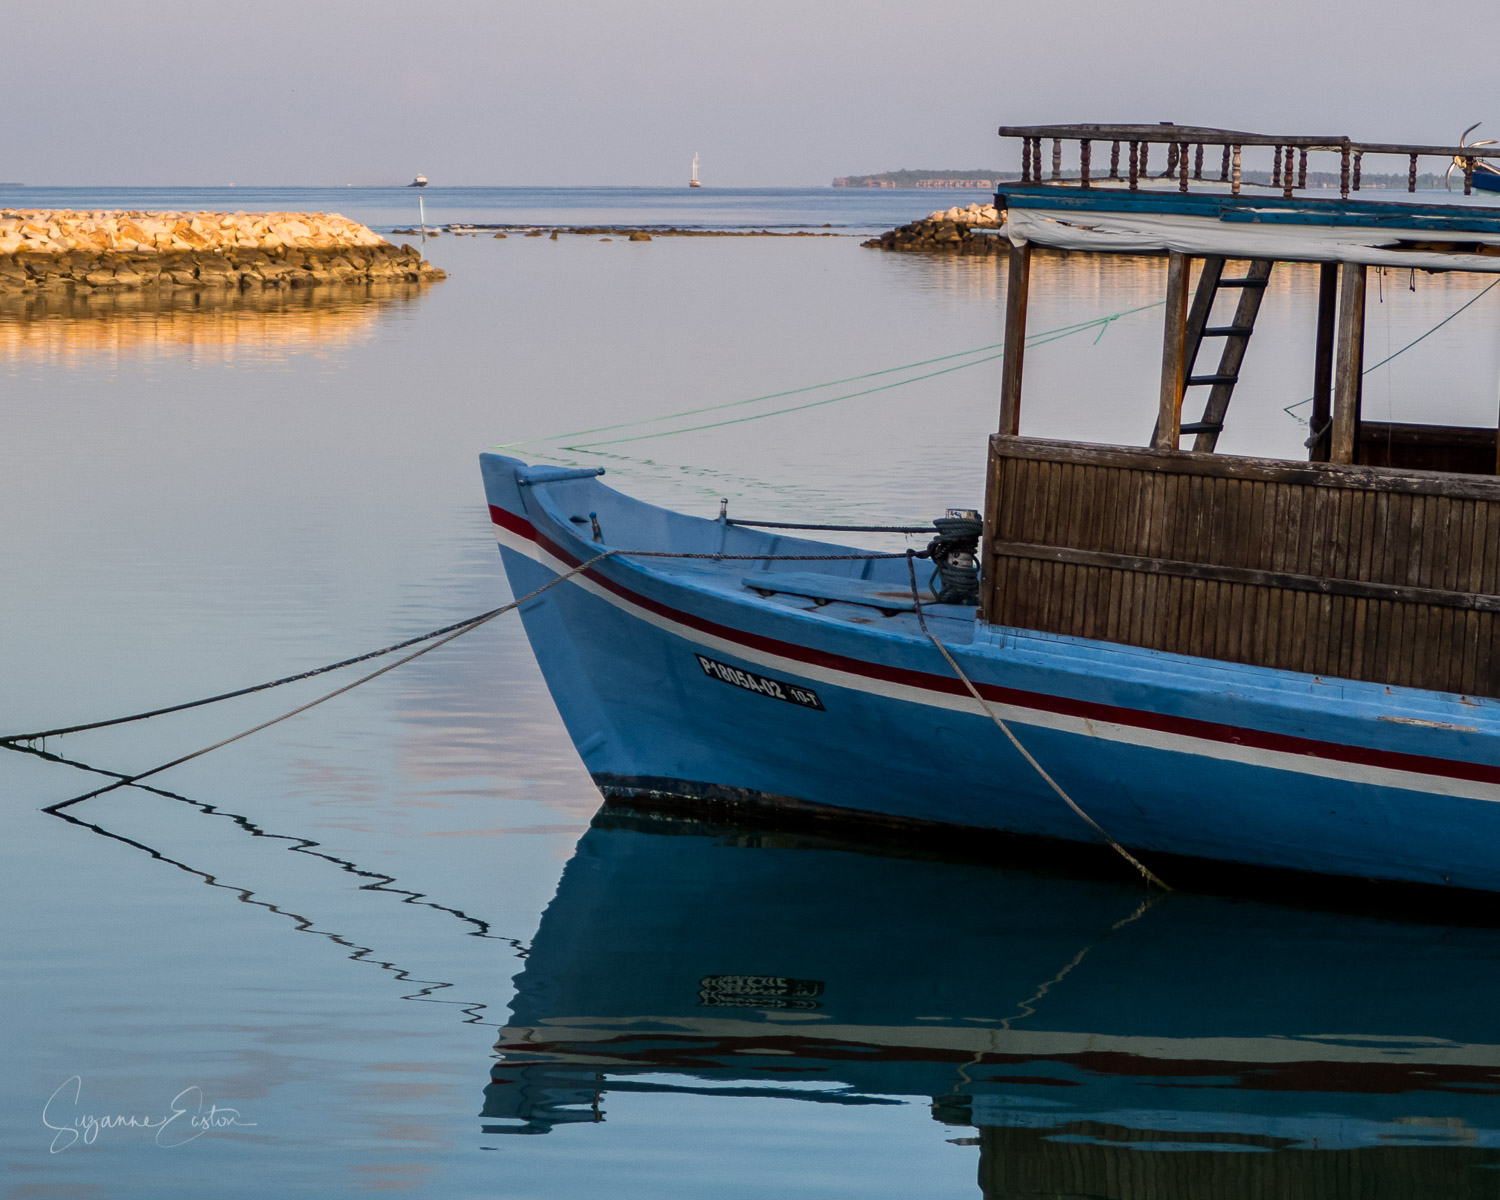 Boats in the harbour in Maradhoo